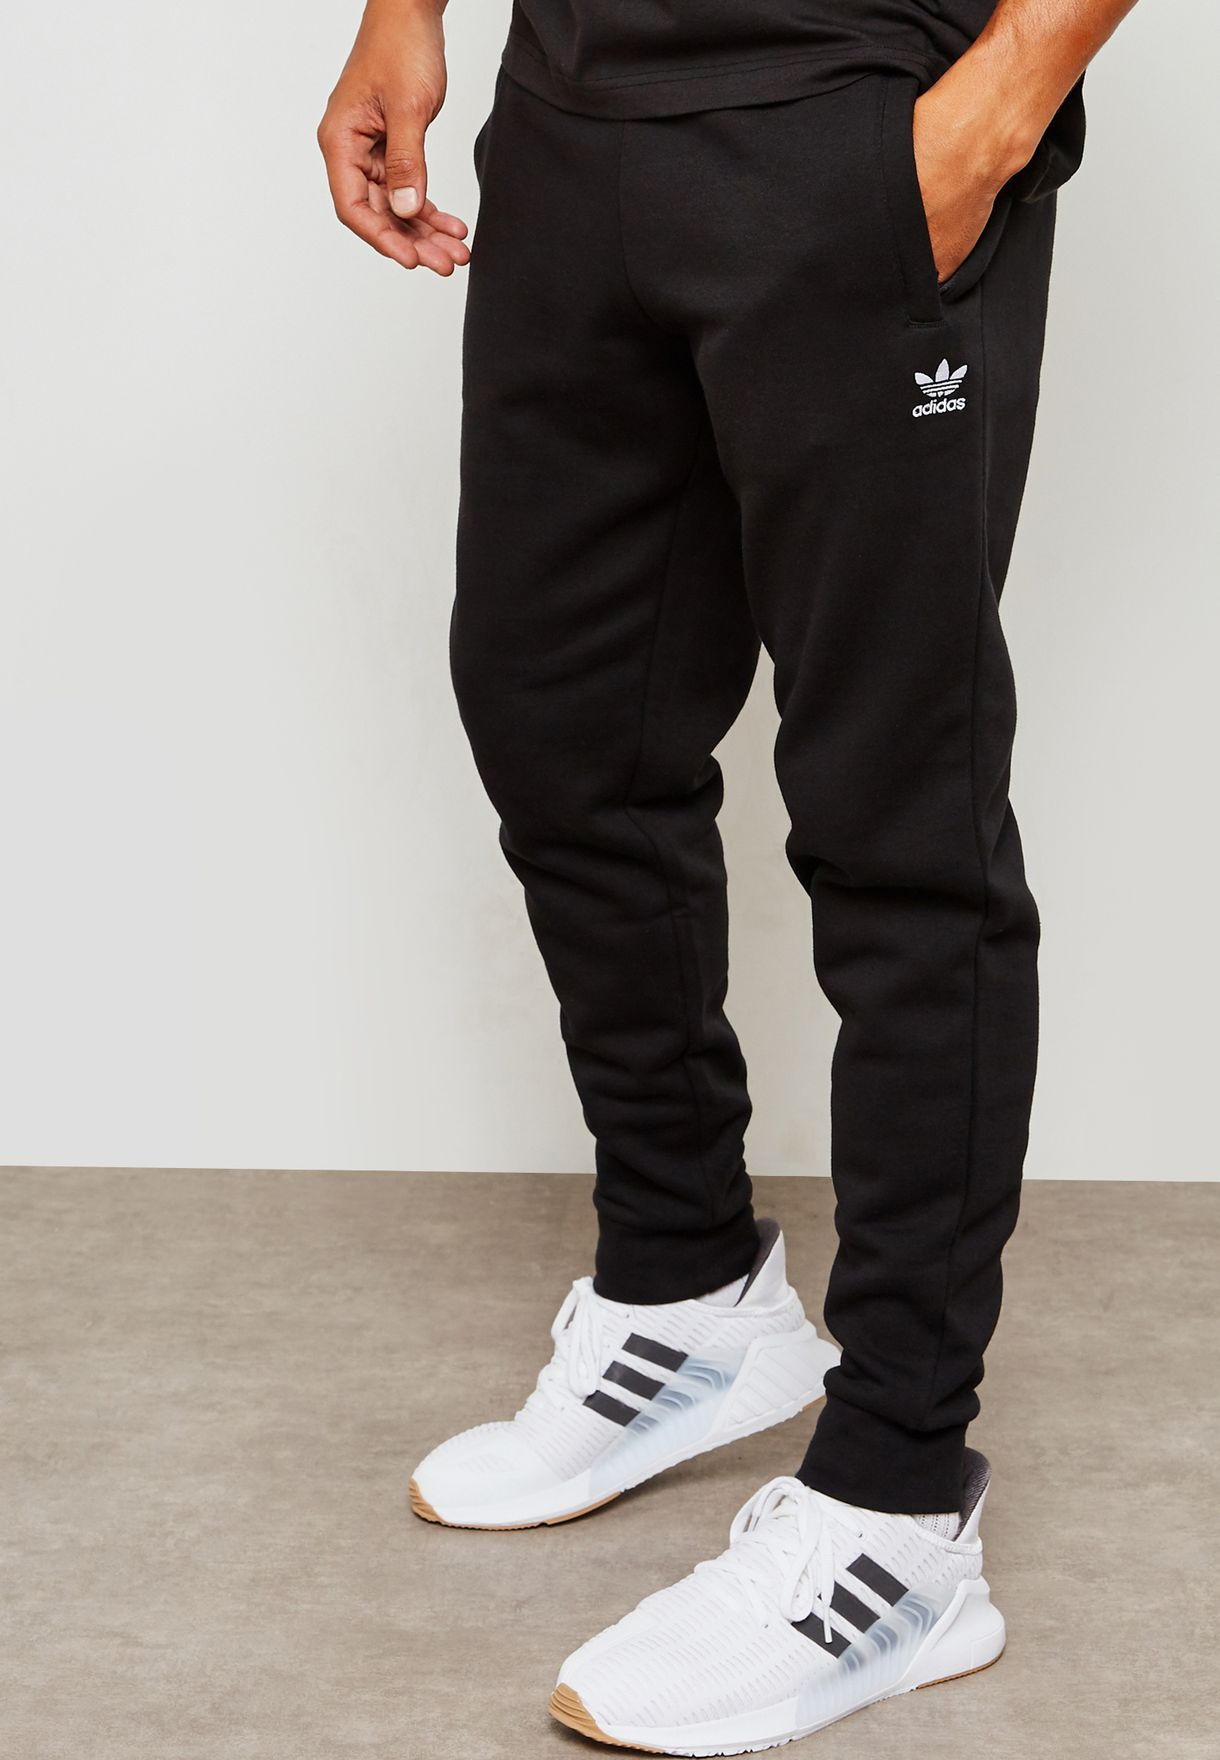 a6761172b Shop adidas Originals black Slim Fleece Sweatpants DN6009 for Men in ...